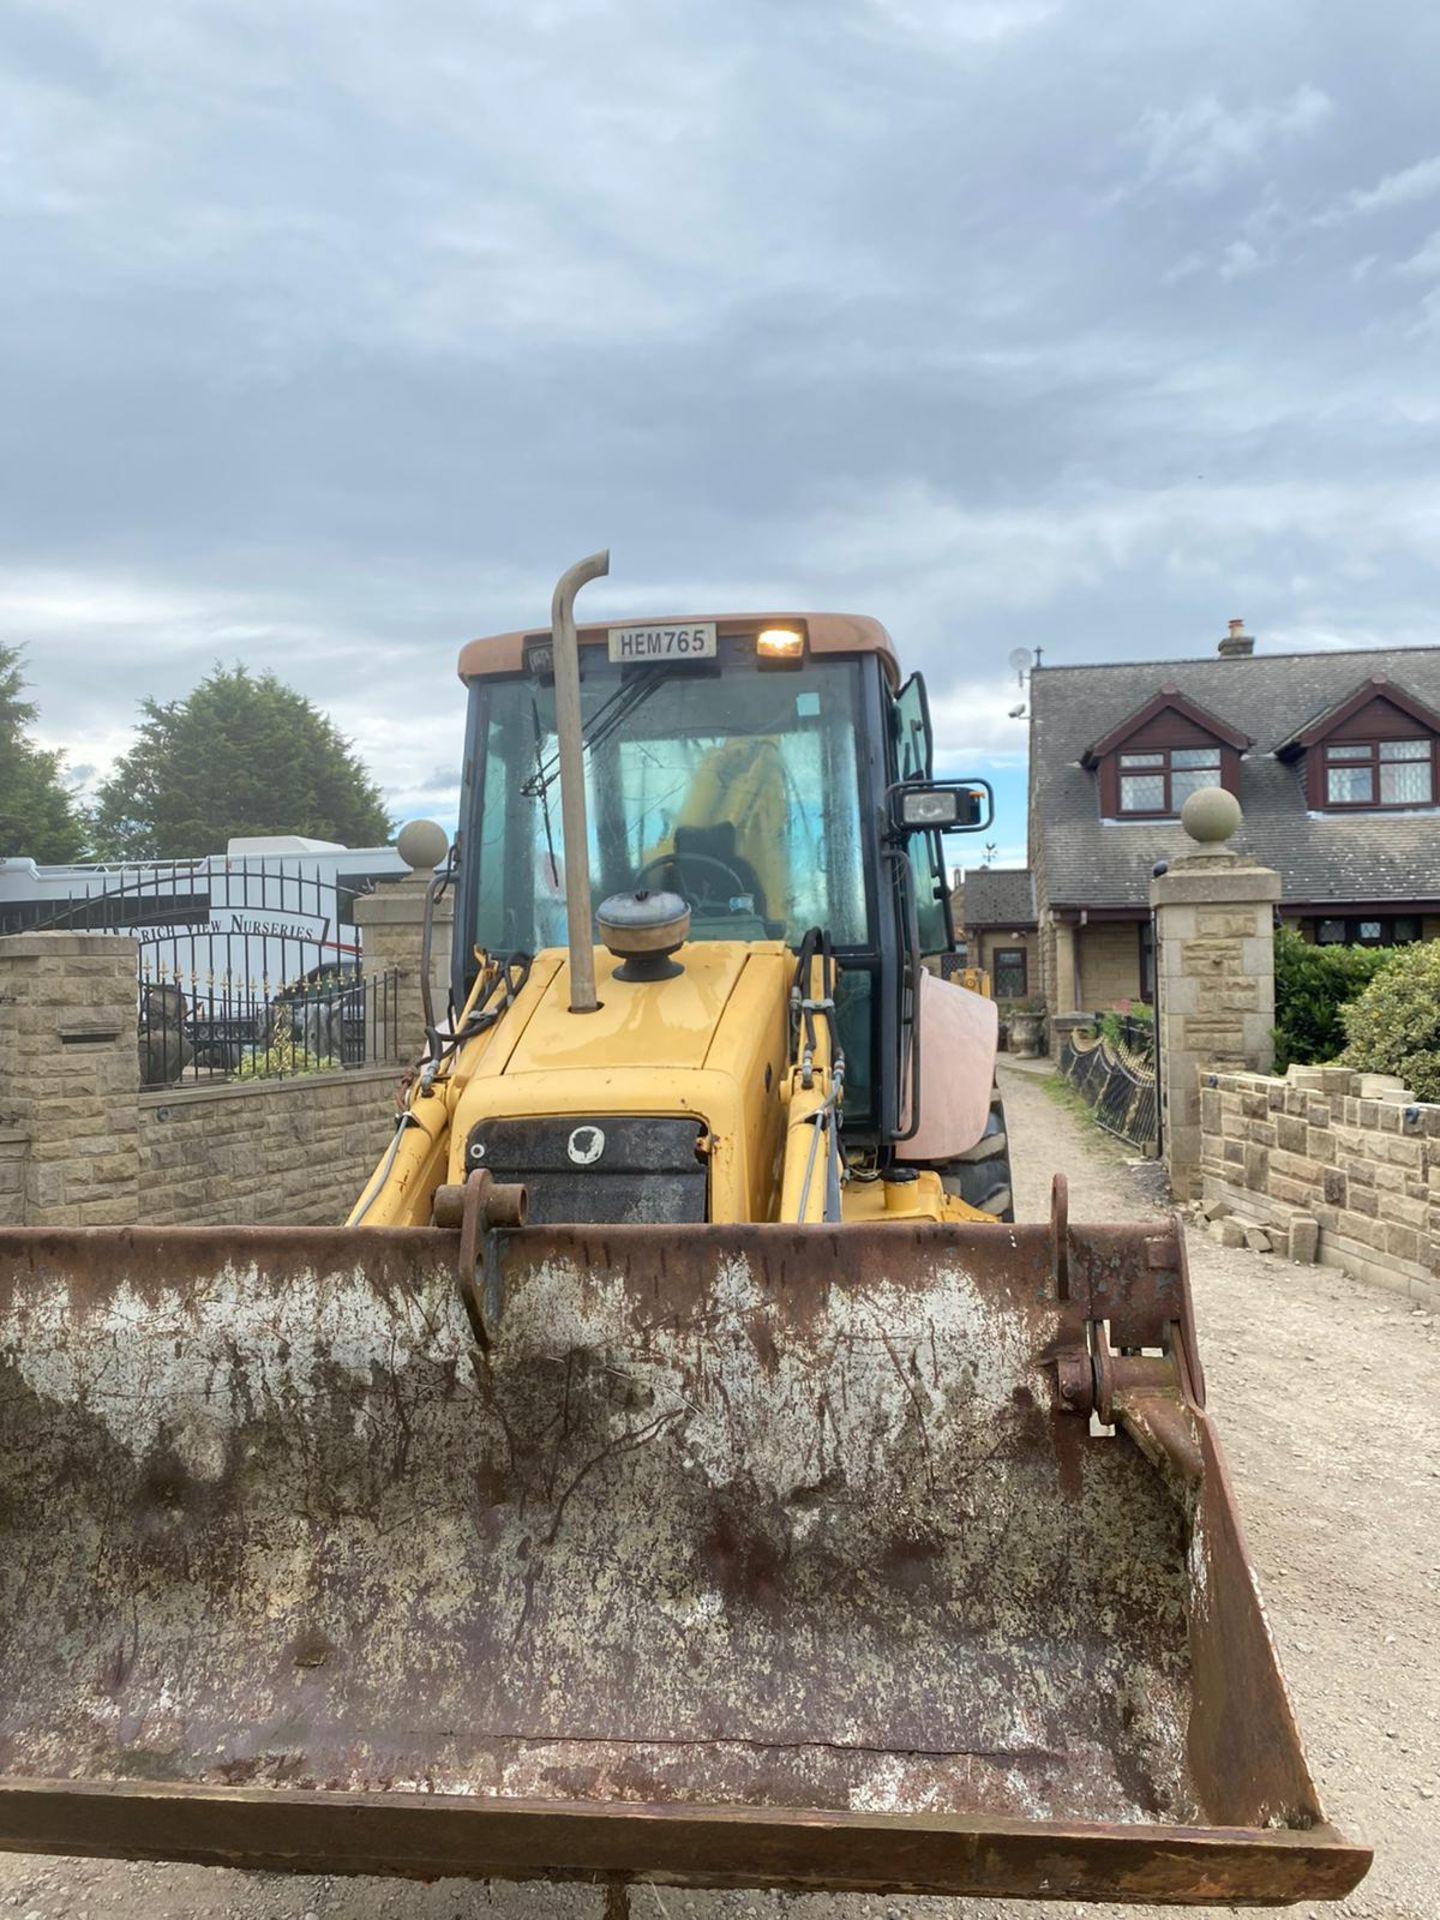 NEWHOLLAND NH95 DIGGER LOADER, 4 WHEEL DRIVE, 4-IN-1 BUCKET, EXTRA DIG, RUNS, WORKS AND DIGS - Image 3 of 8